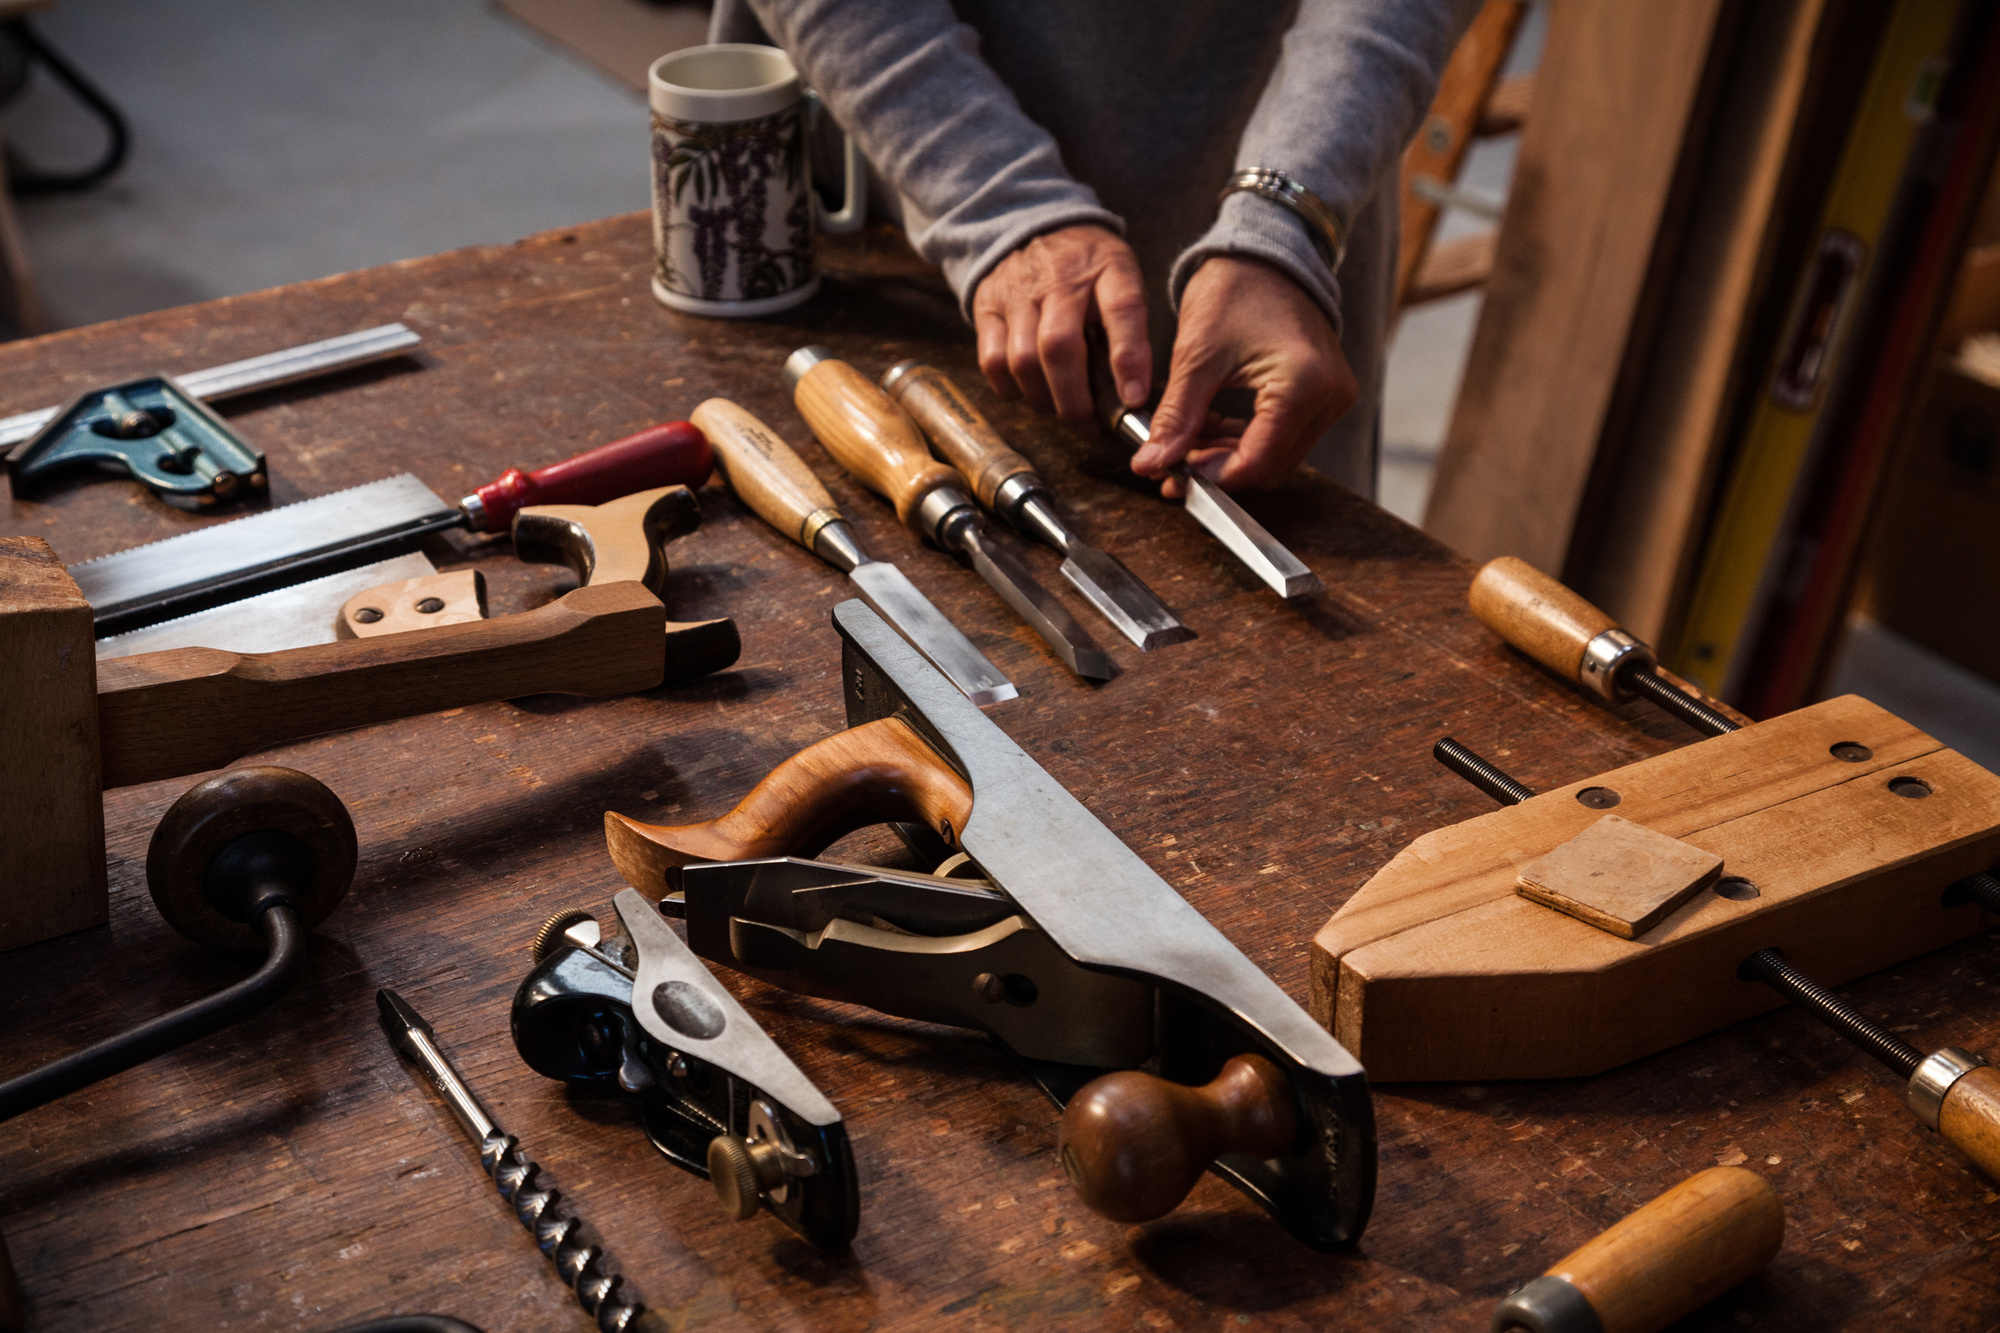 Basic Woodworking Tools You Need For Your Home DIY